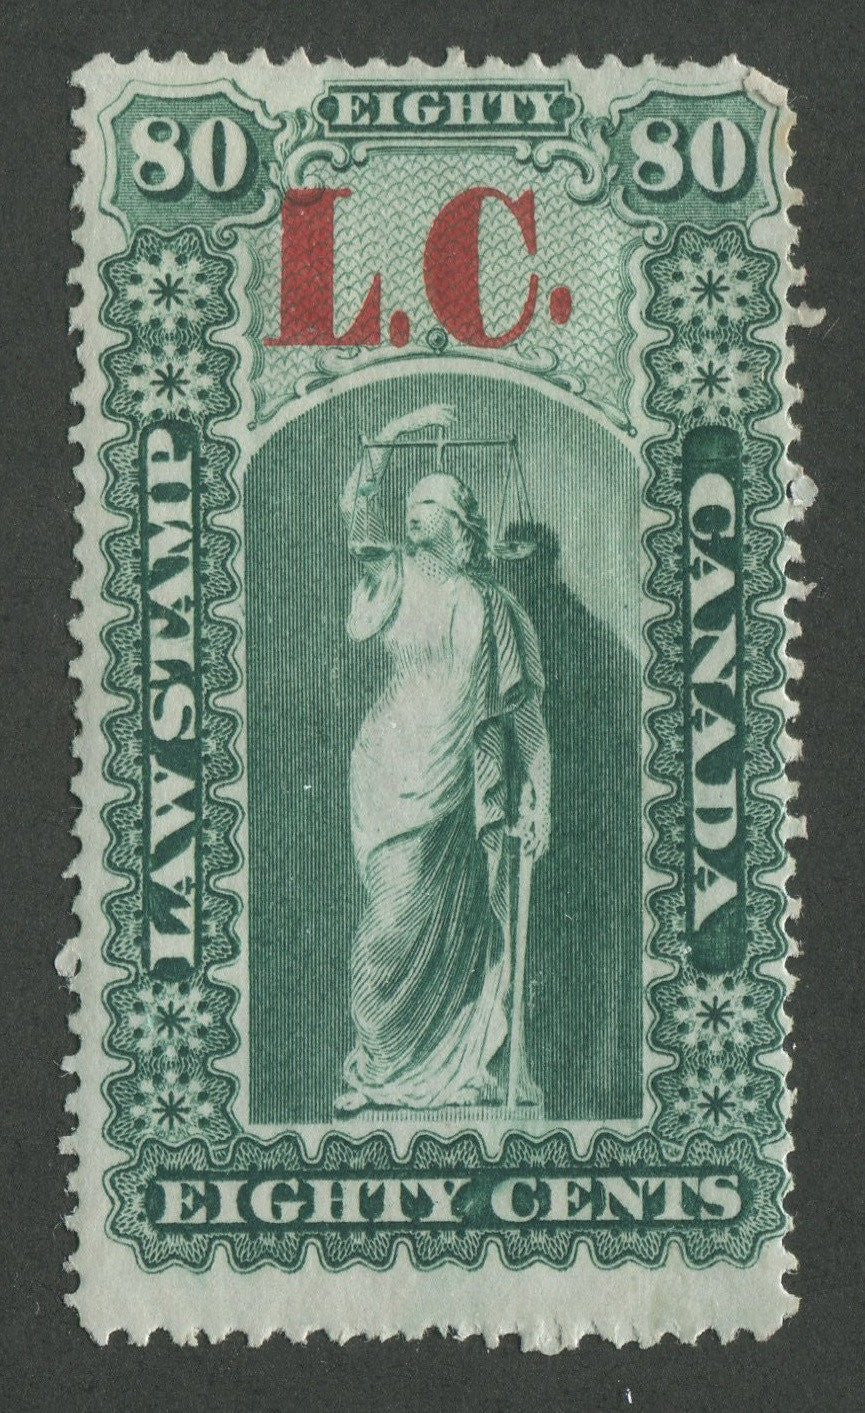 0008QL1707 - QL8 - Mint - UNLISTED - Deveney Stamps Ltd. Canadian Stamps